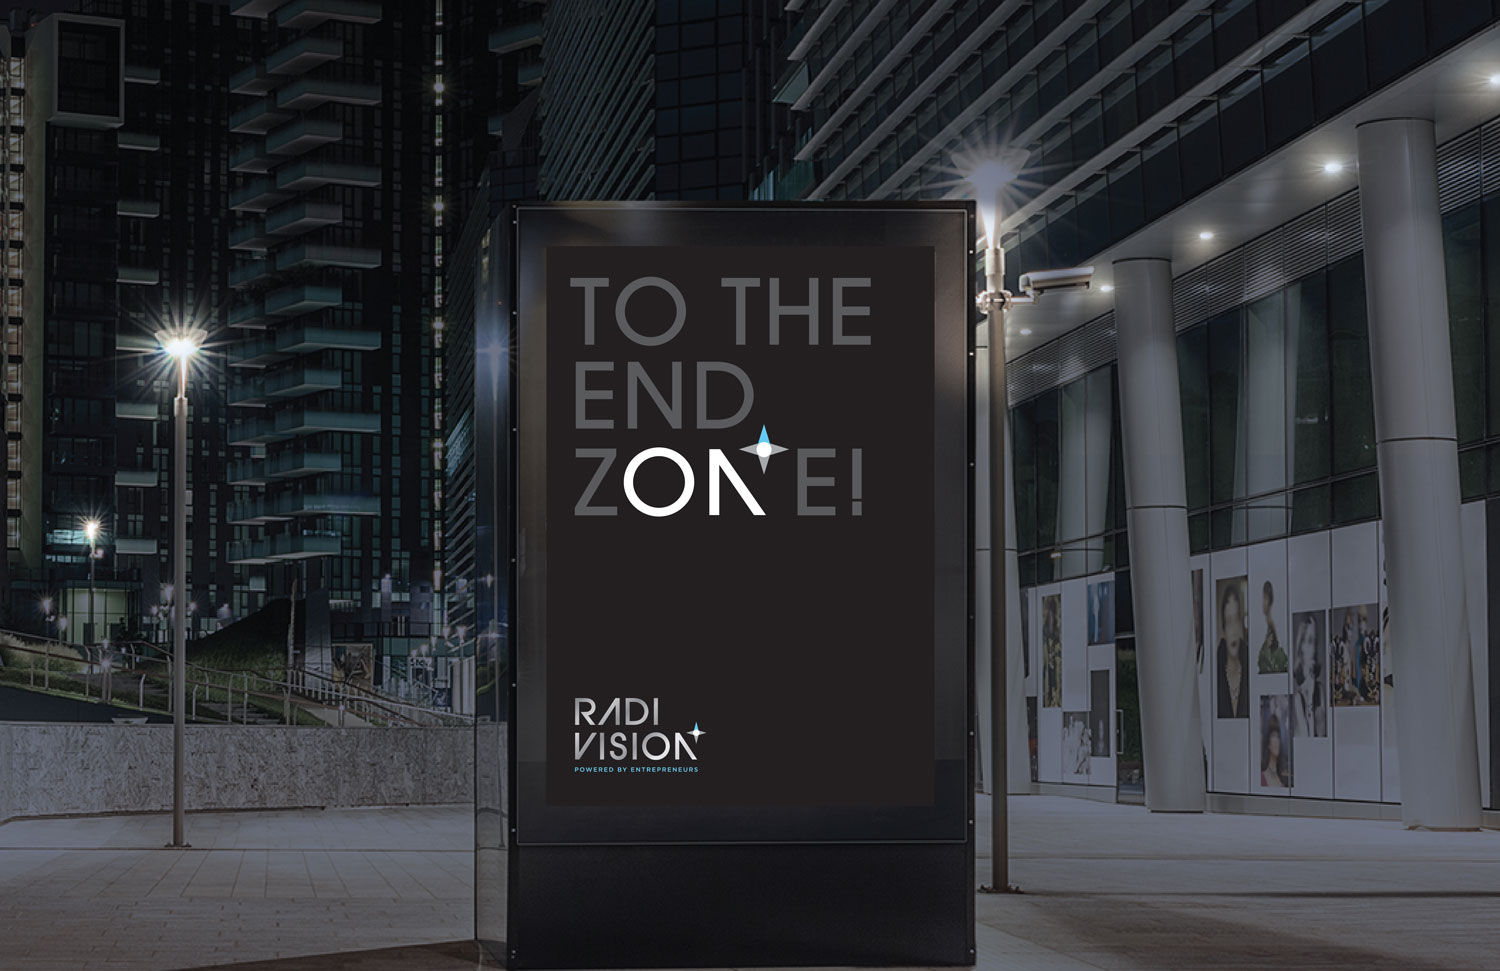 A billboard campaign that motivates and inspires visionaries to never give up in pursuit of their dreams.